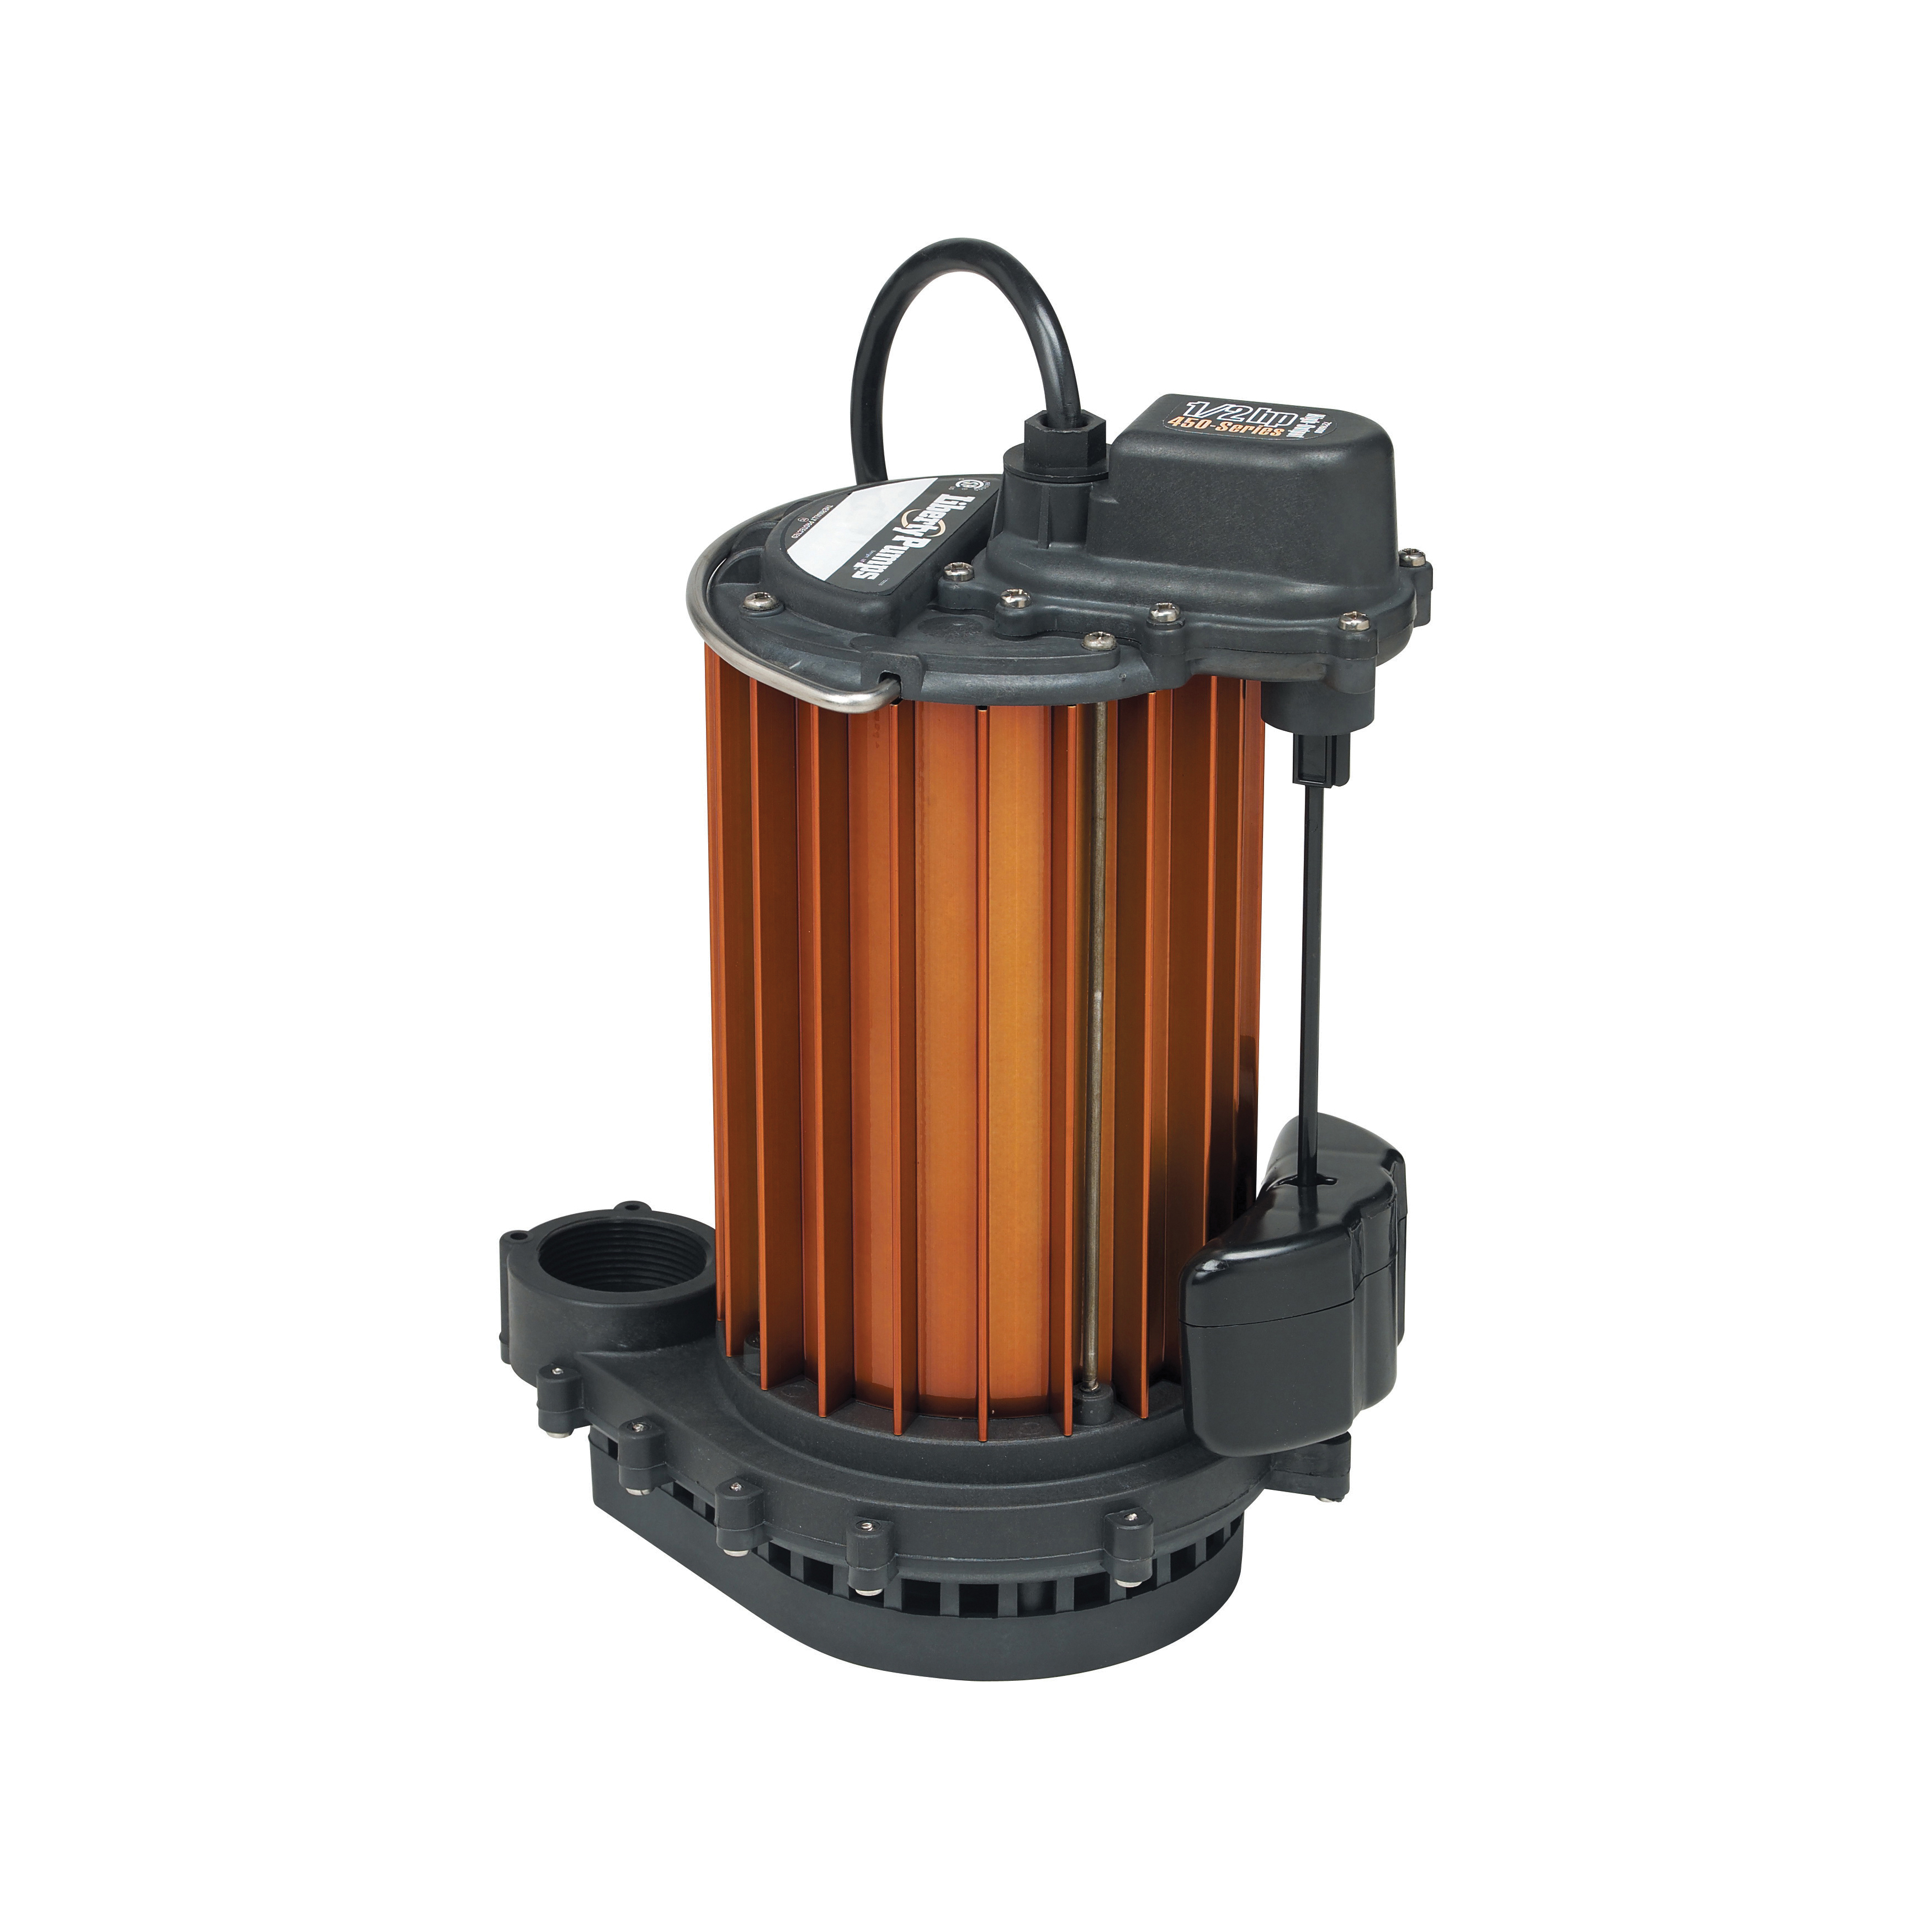 Liberty Pumps® 453 450 1-Phase Submersible Sump Pump With Plug, 52 gpm, 1-1/2 in Outlet, 1/2 hp, Aluminum, Domestic